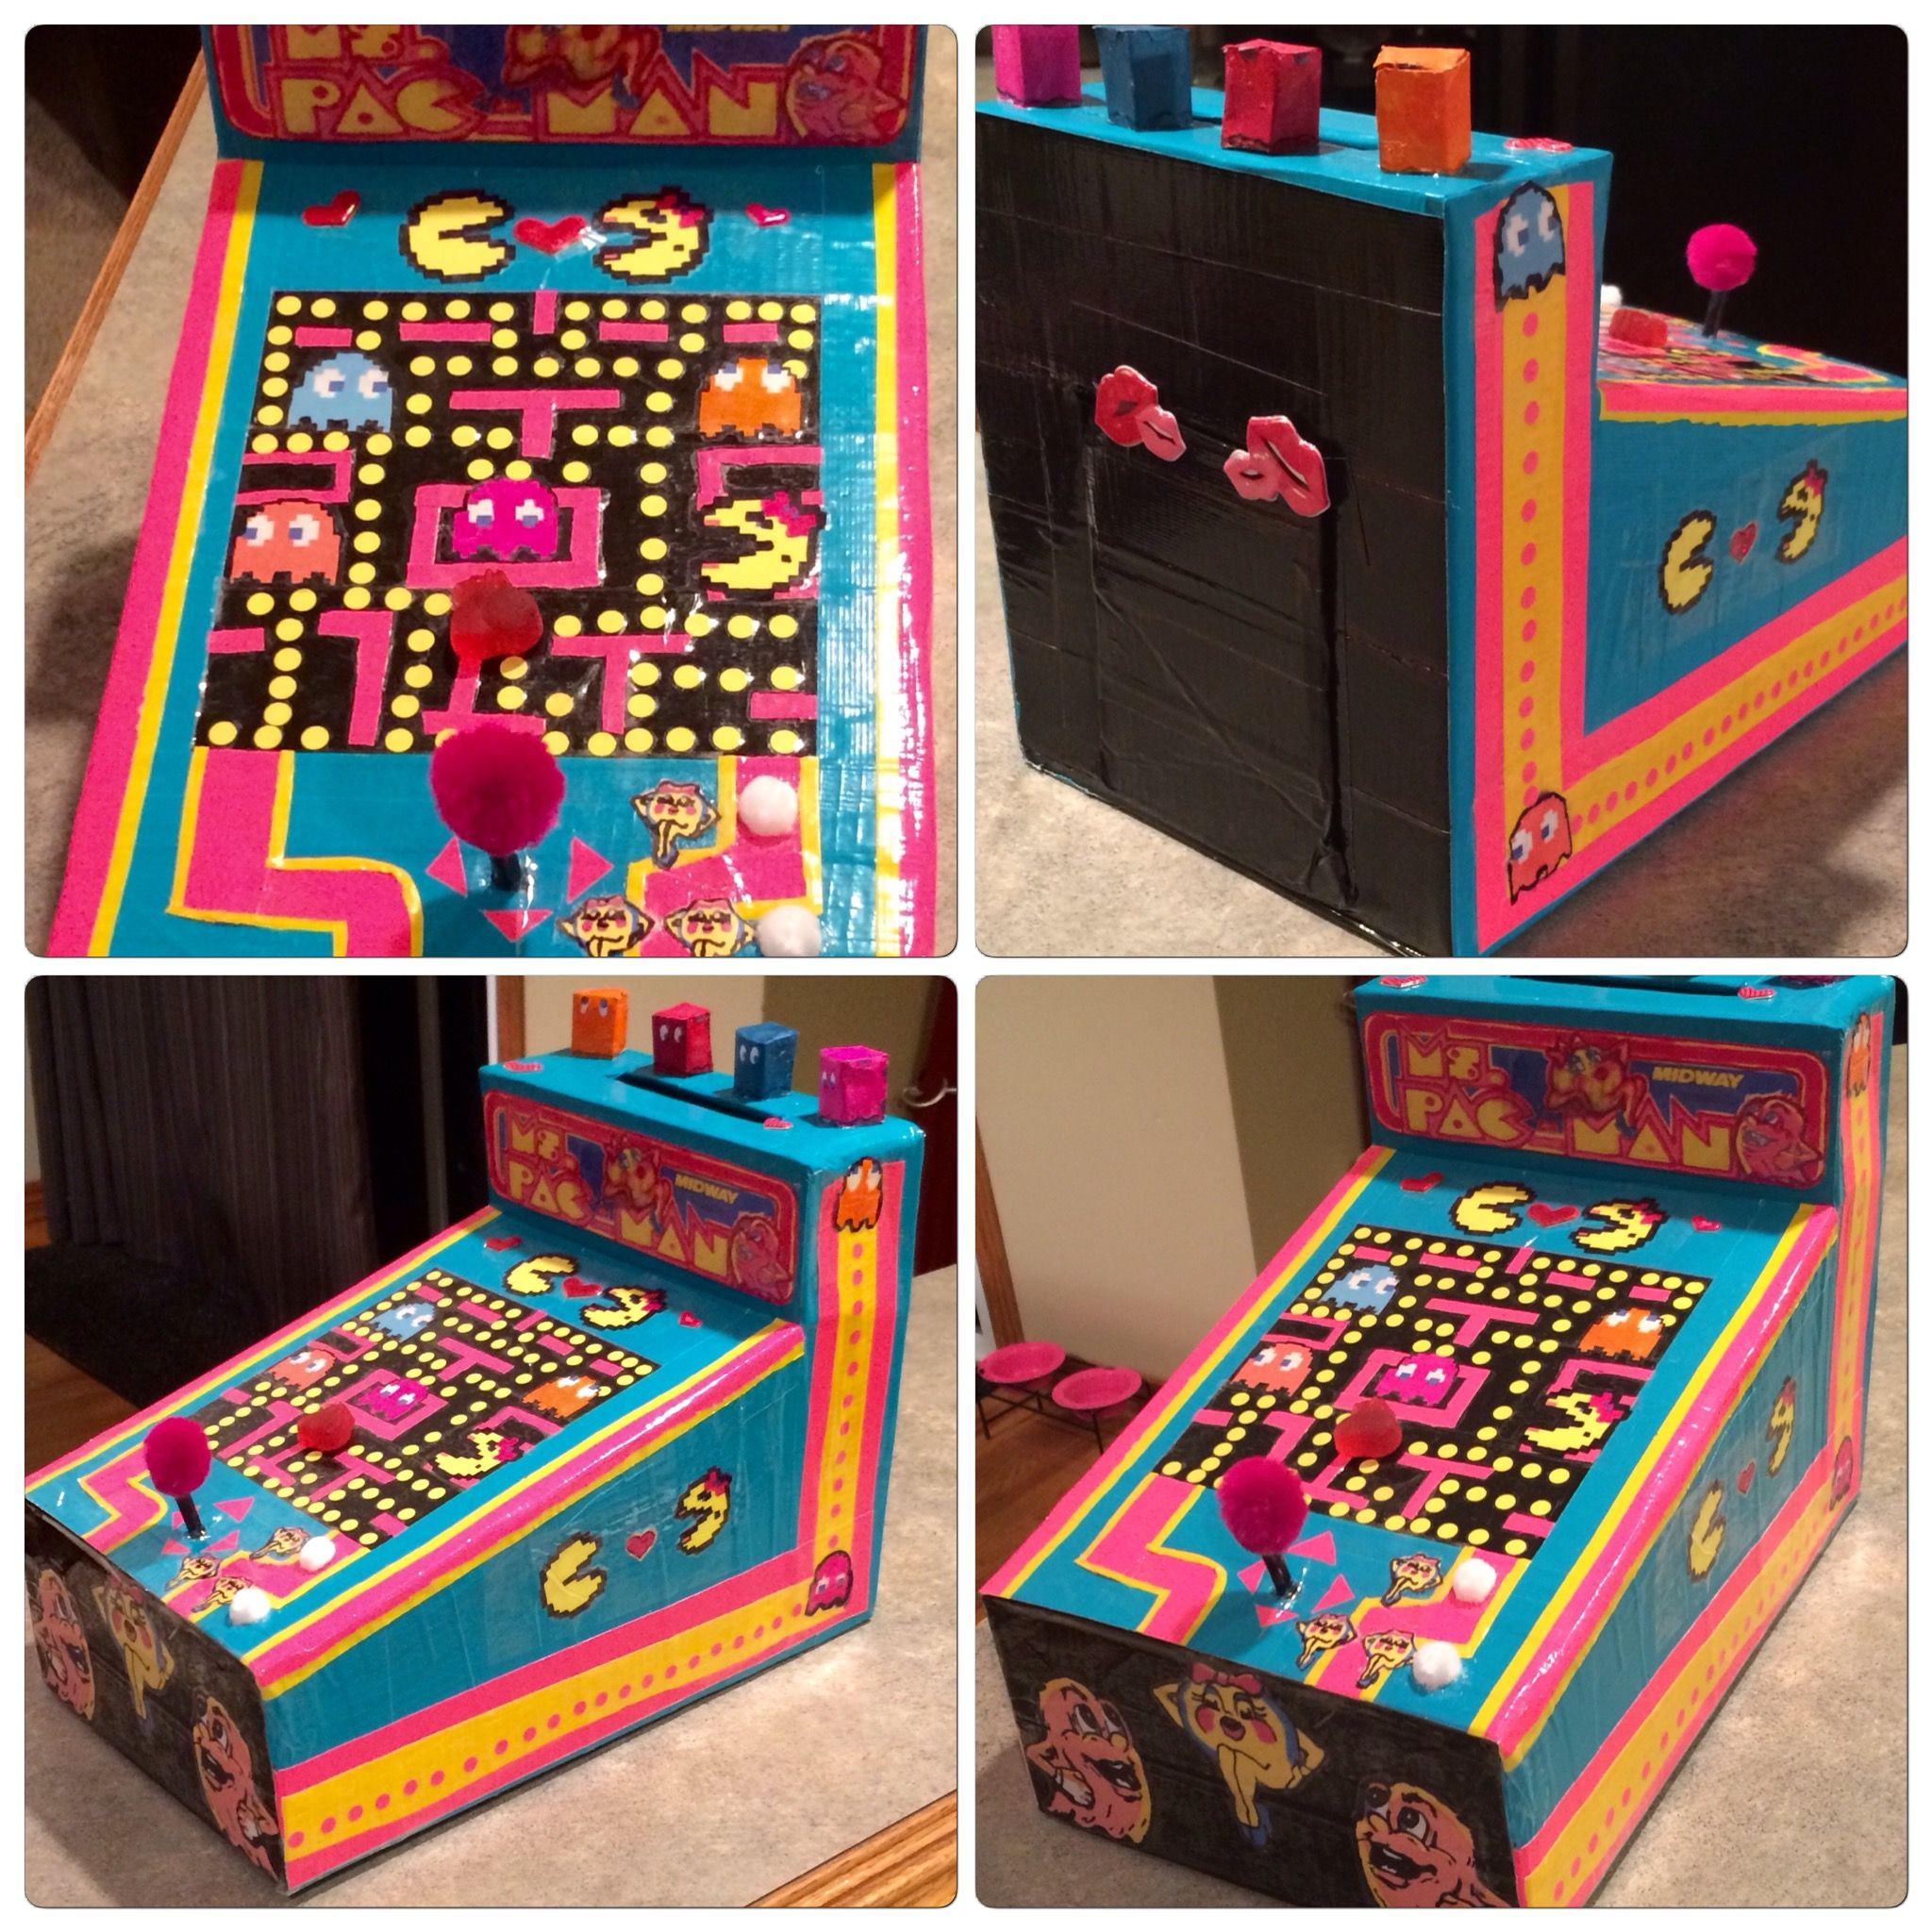 Mrs Pac Man Arcade Valentine Box We Made It With Lots Of Colored Interesting Pac Man Recycling Bins And Re